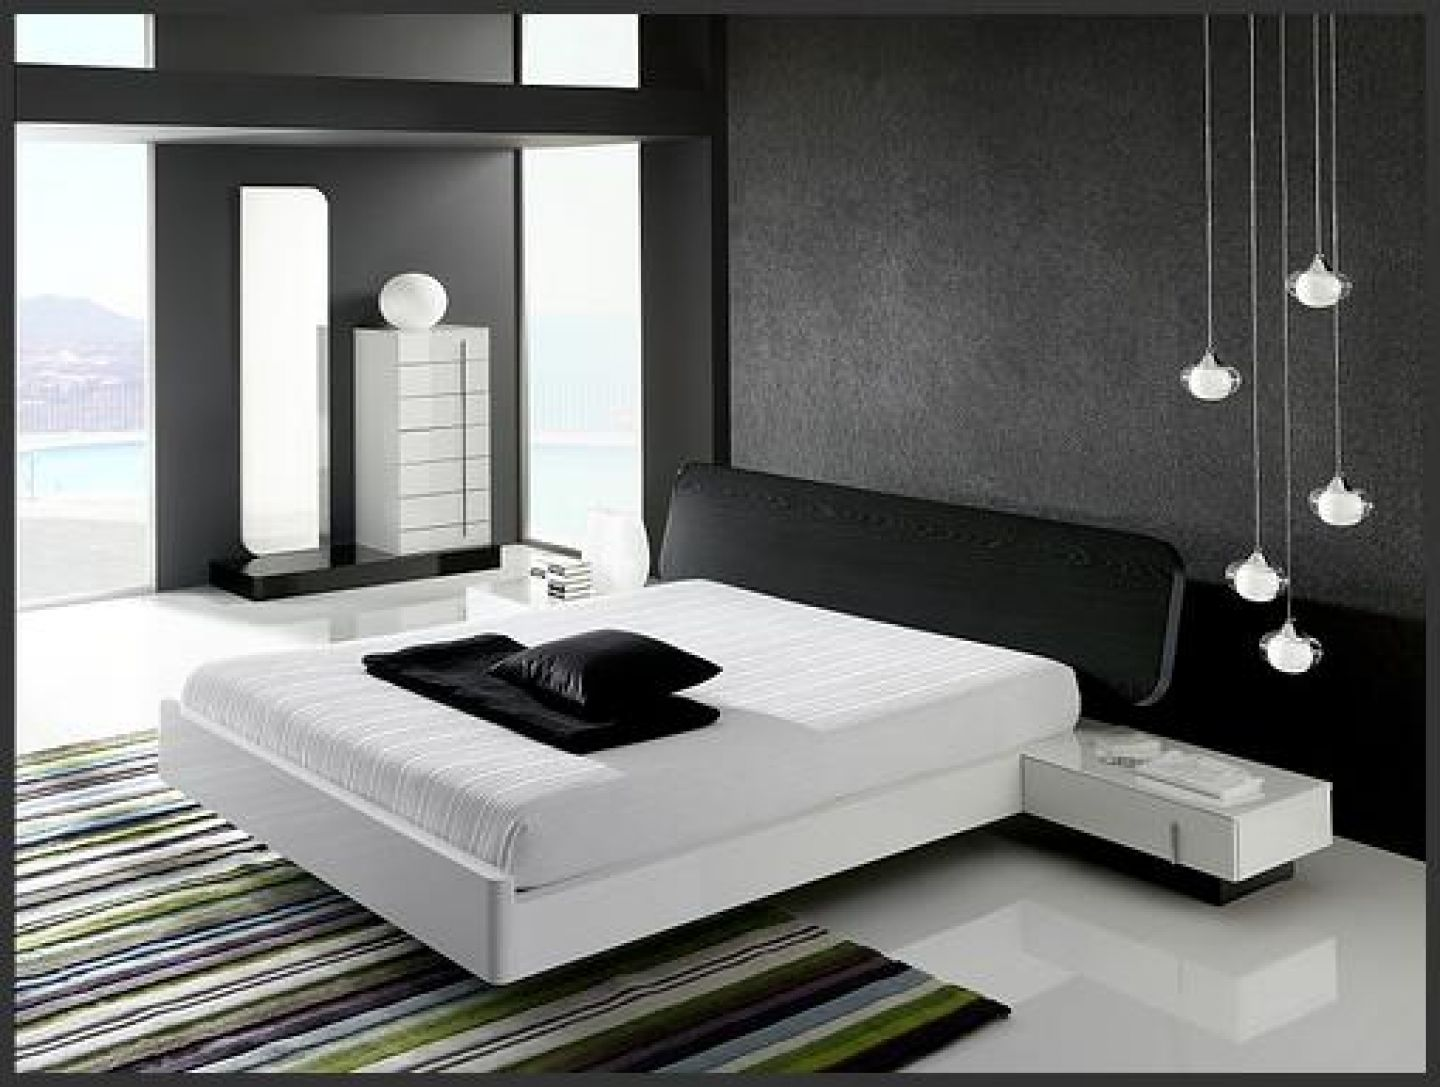 Interior minimalist black and white bedroom interior Modern minimalist master bedroom